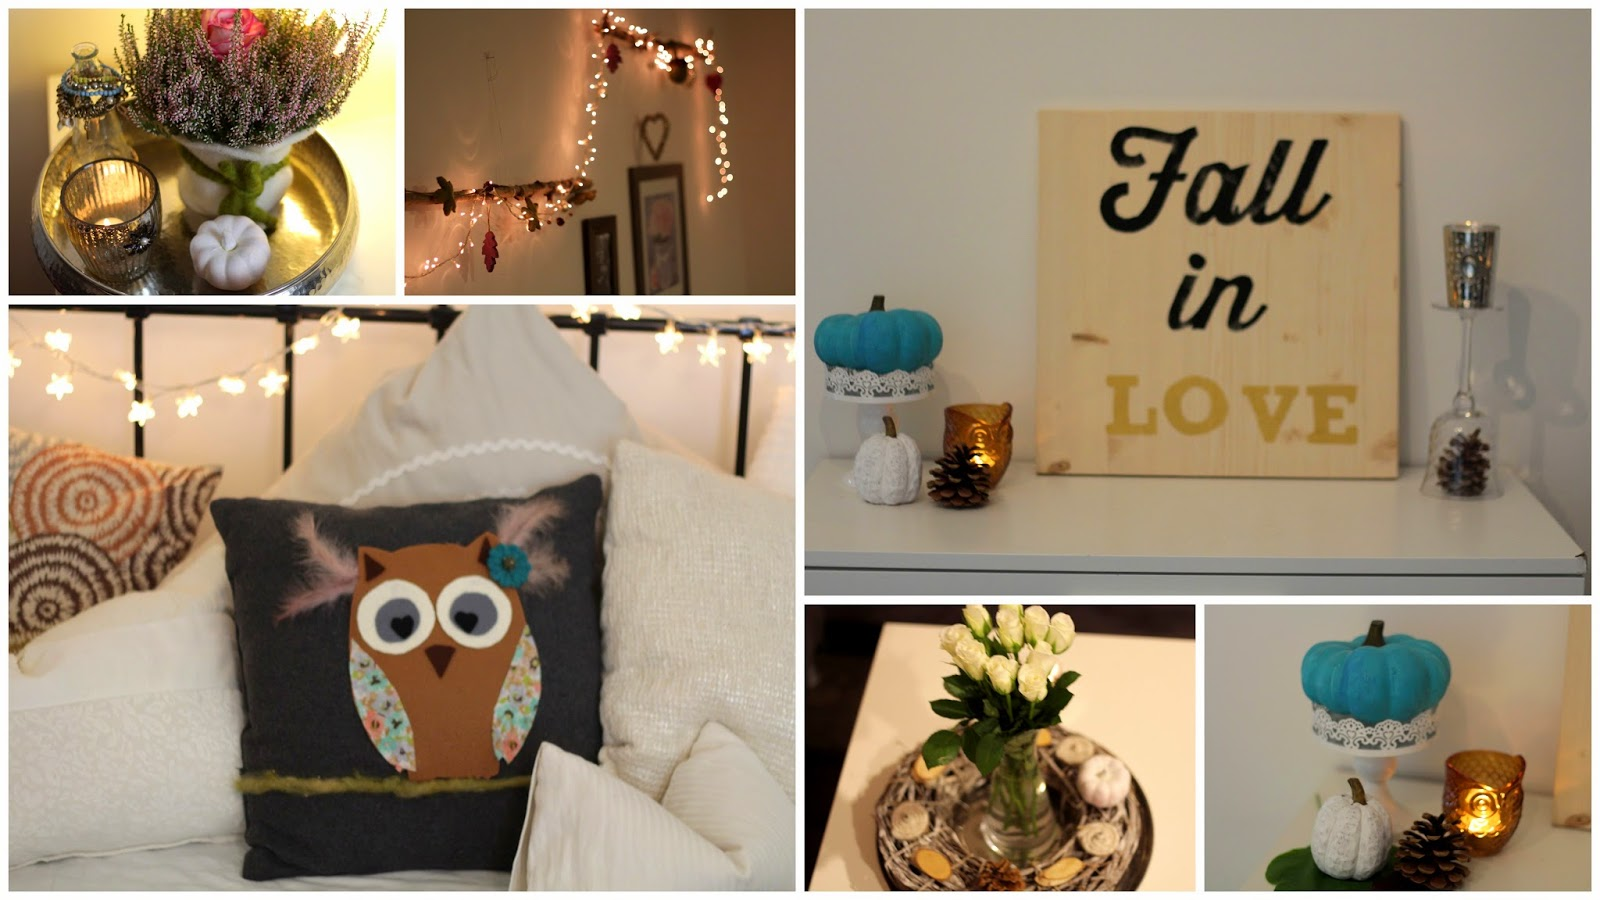 Misstipsforyou on blog 7 diy raumdeko ideen herbst 2014 for H b bedrooms oldham